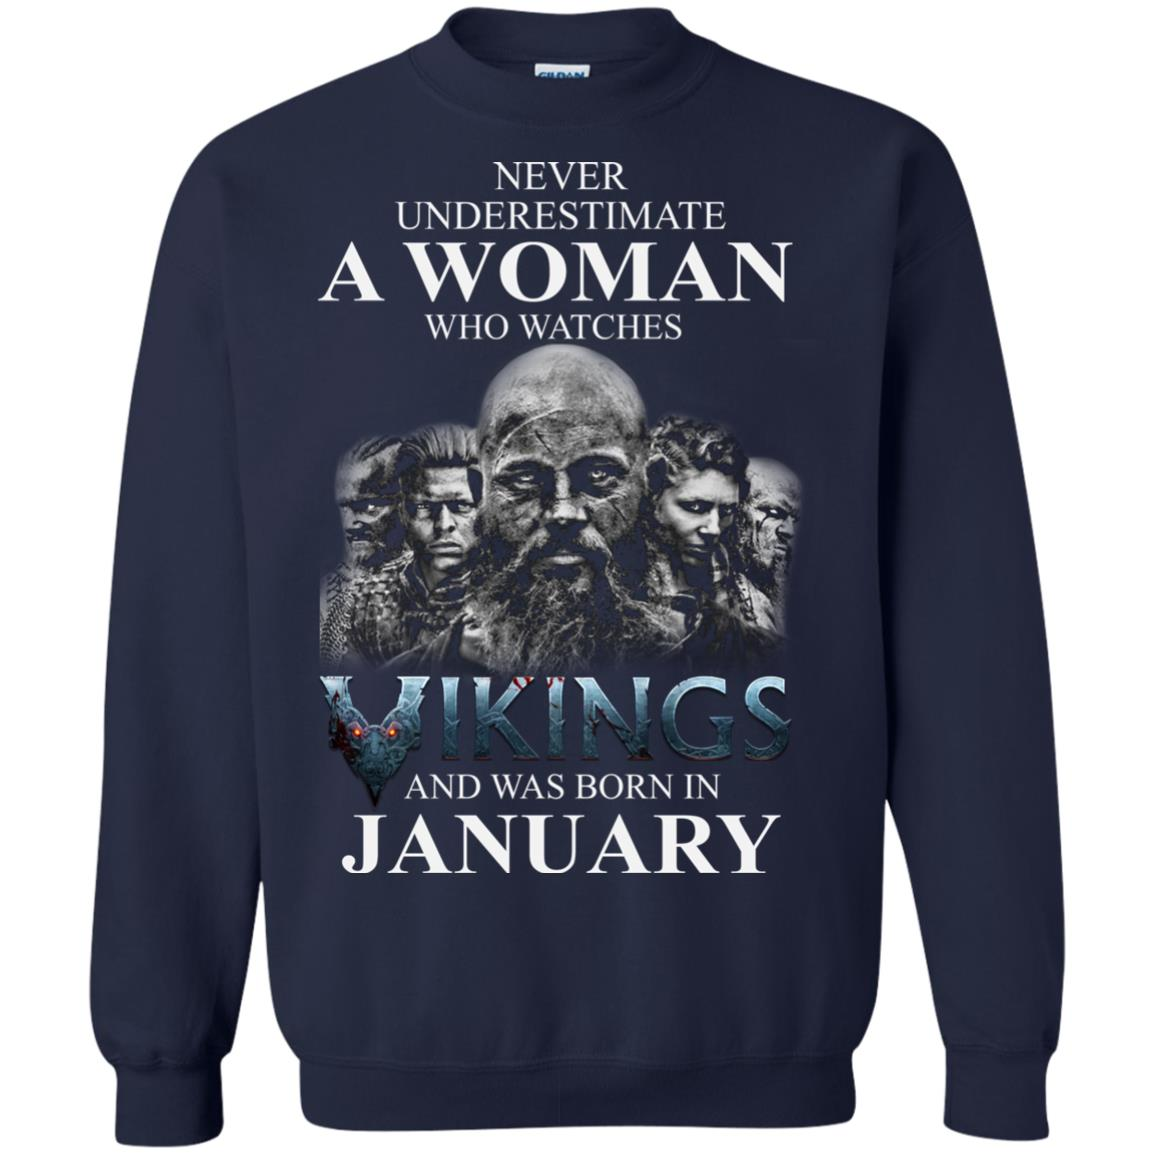 image 1358 - Never Underestimate A woman who watches Vikings and was born in January shirt